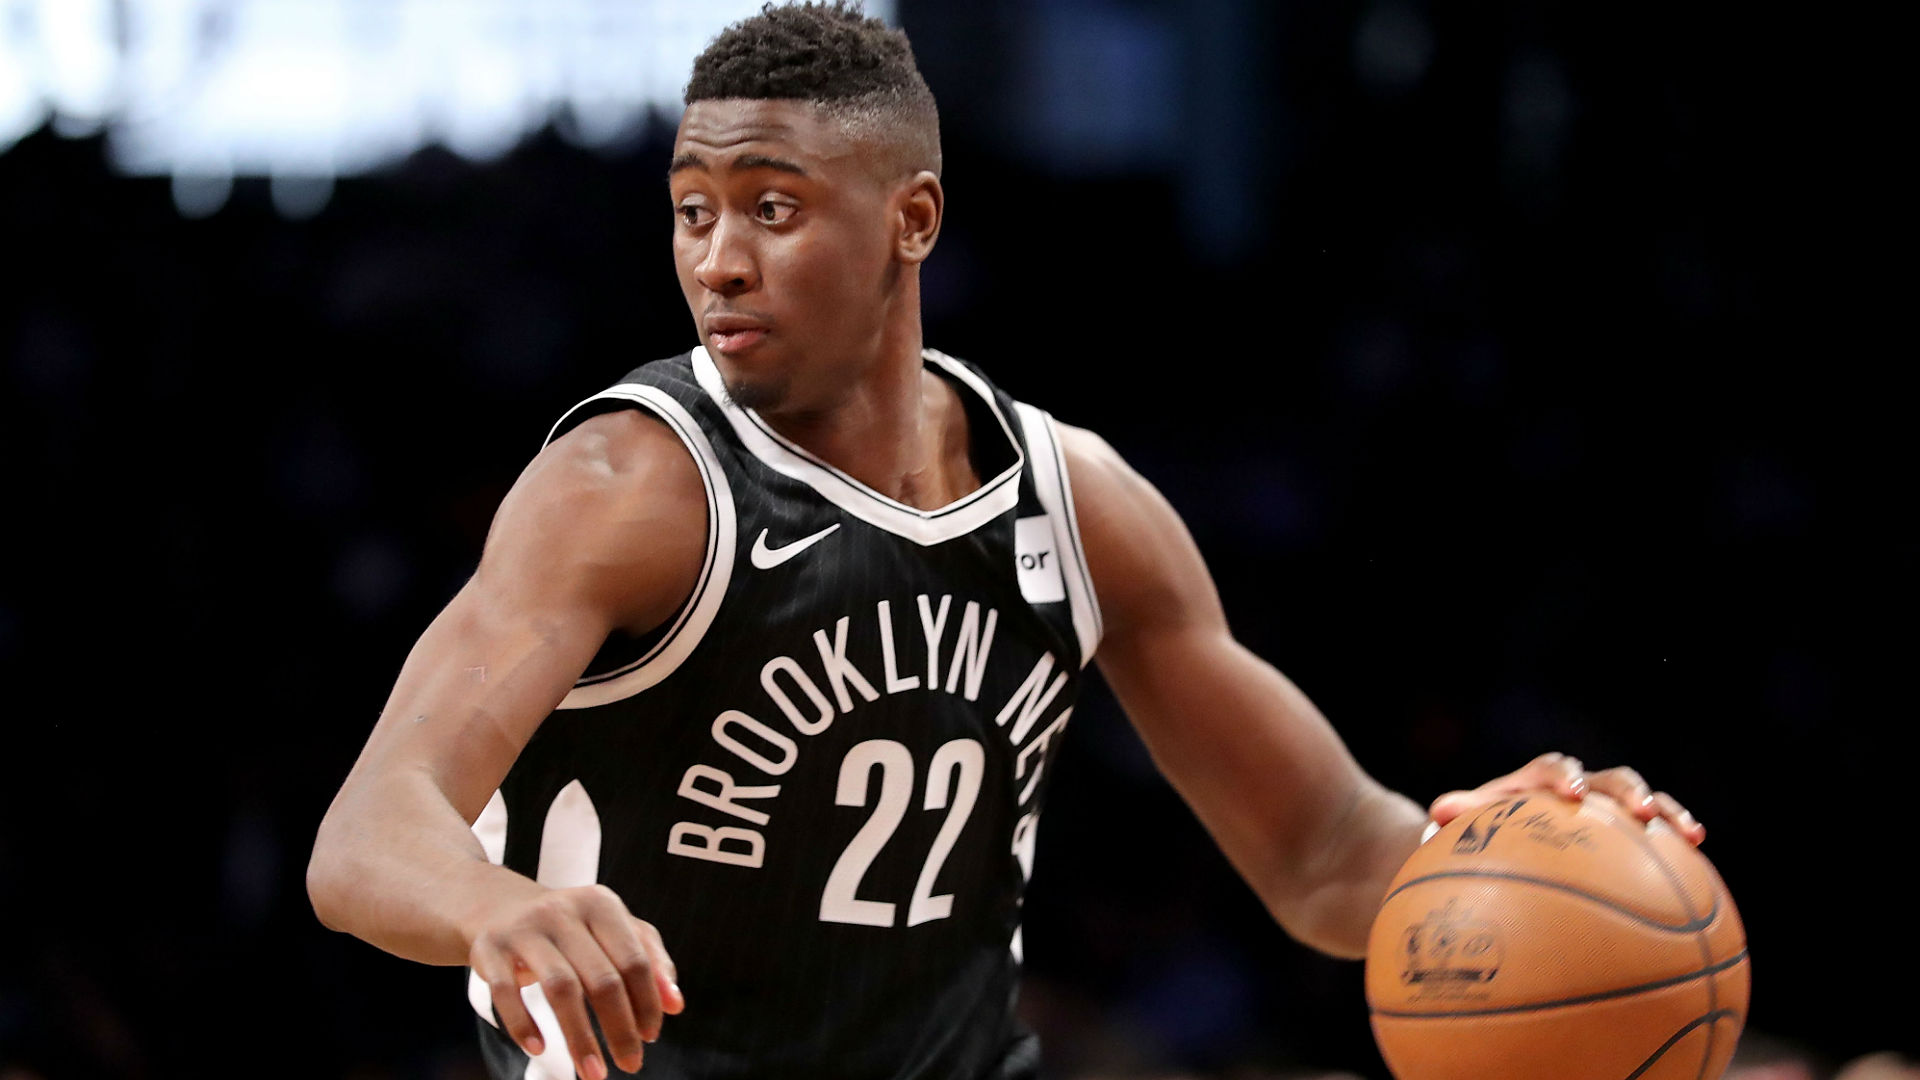 Caris LeVert Suffers Gruesome Leg Injury During Brooklyn Nets Game